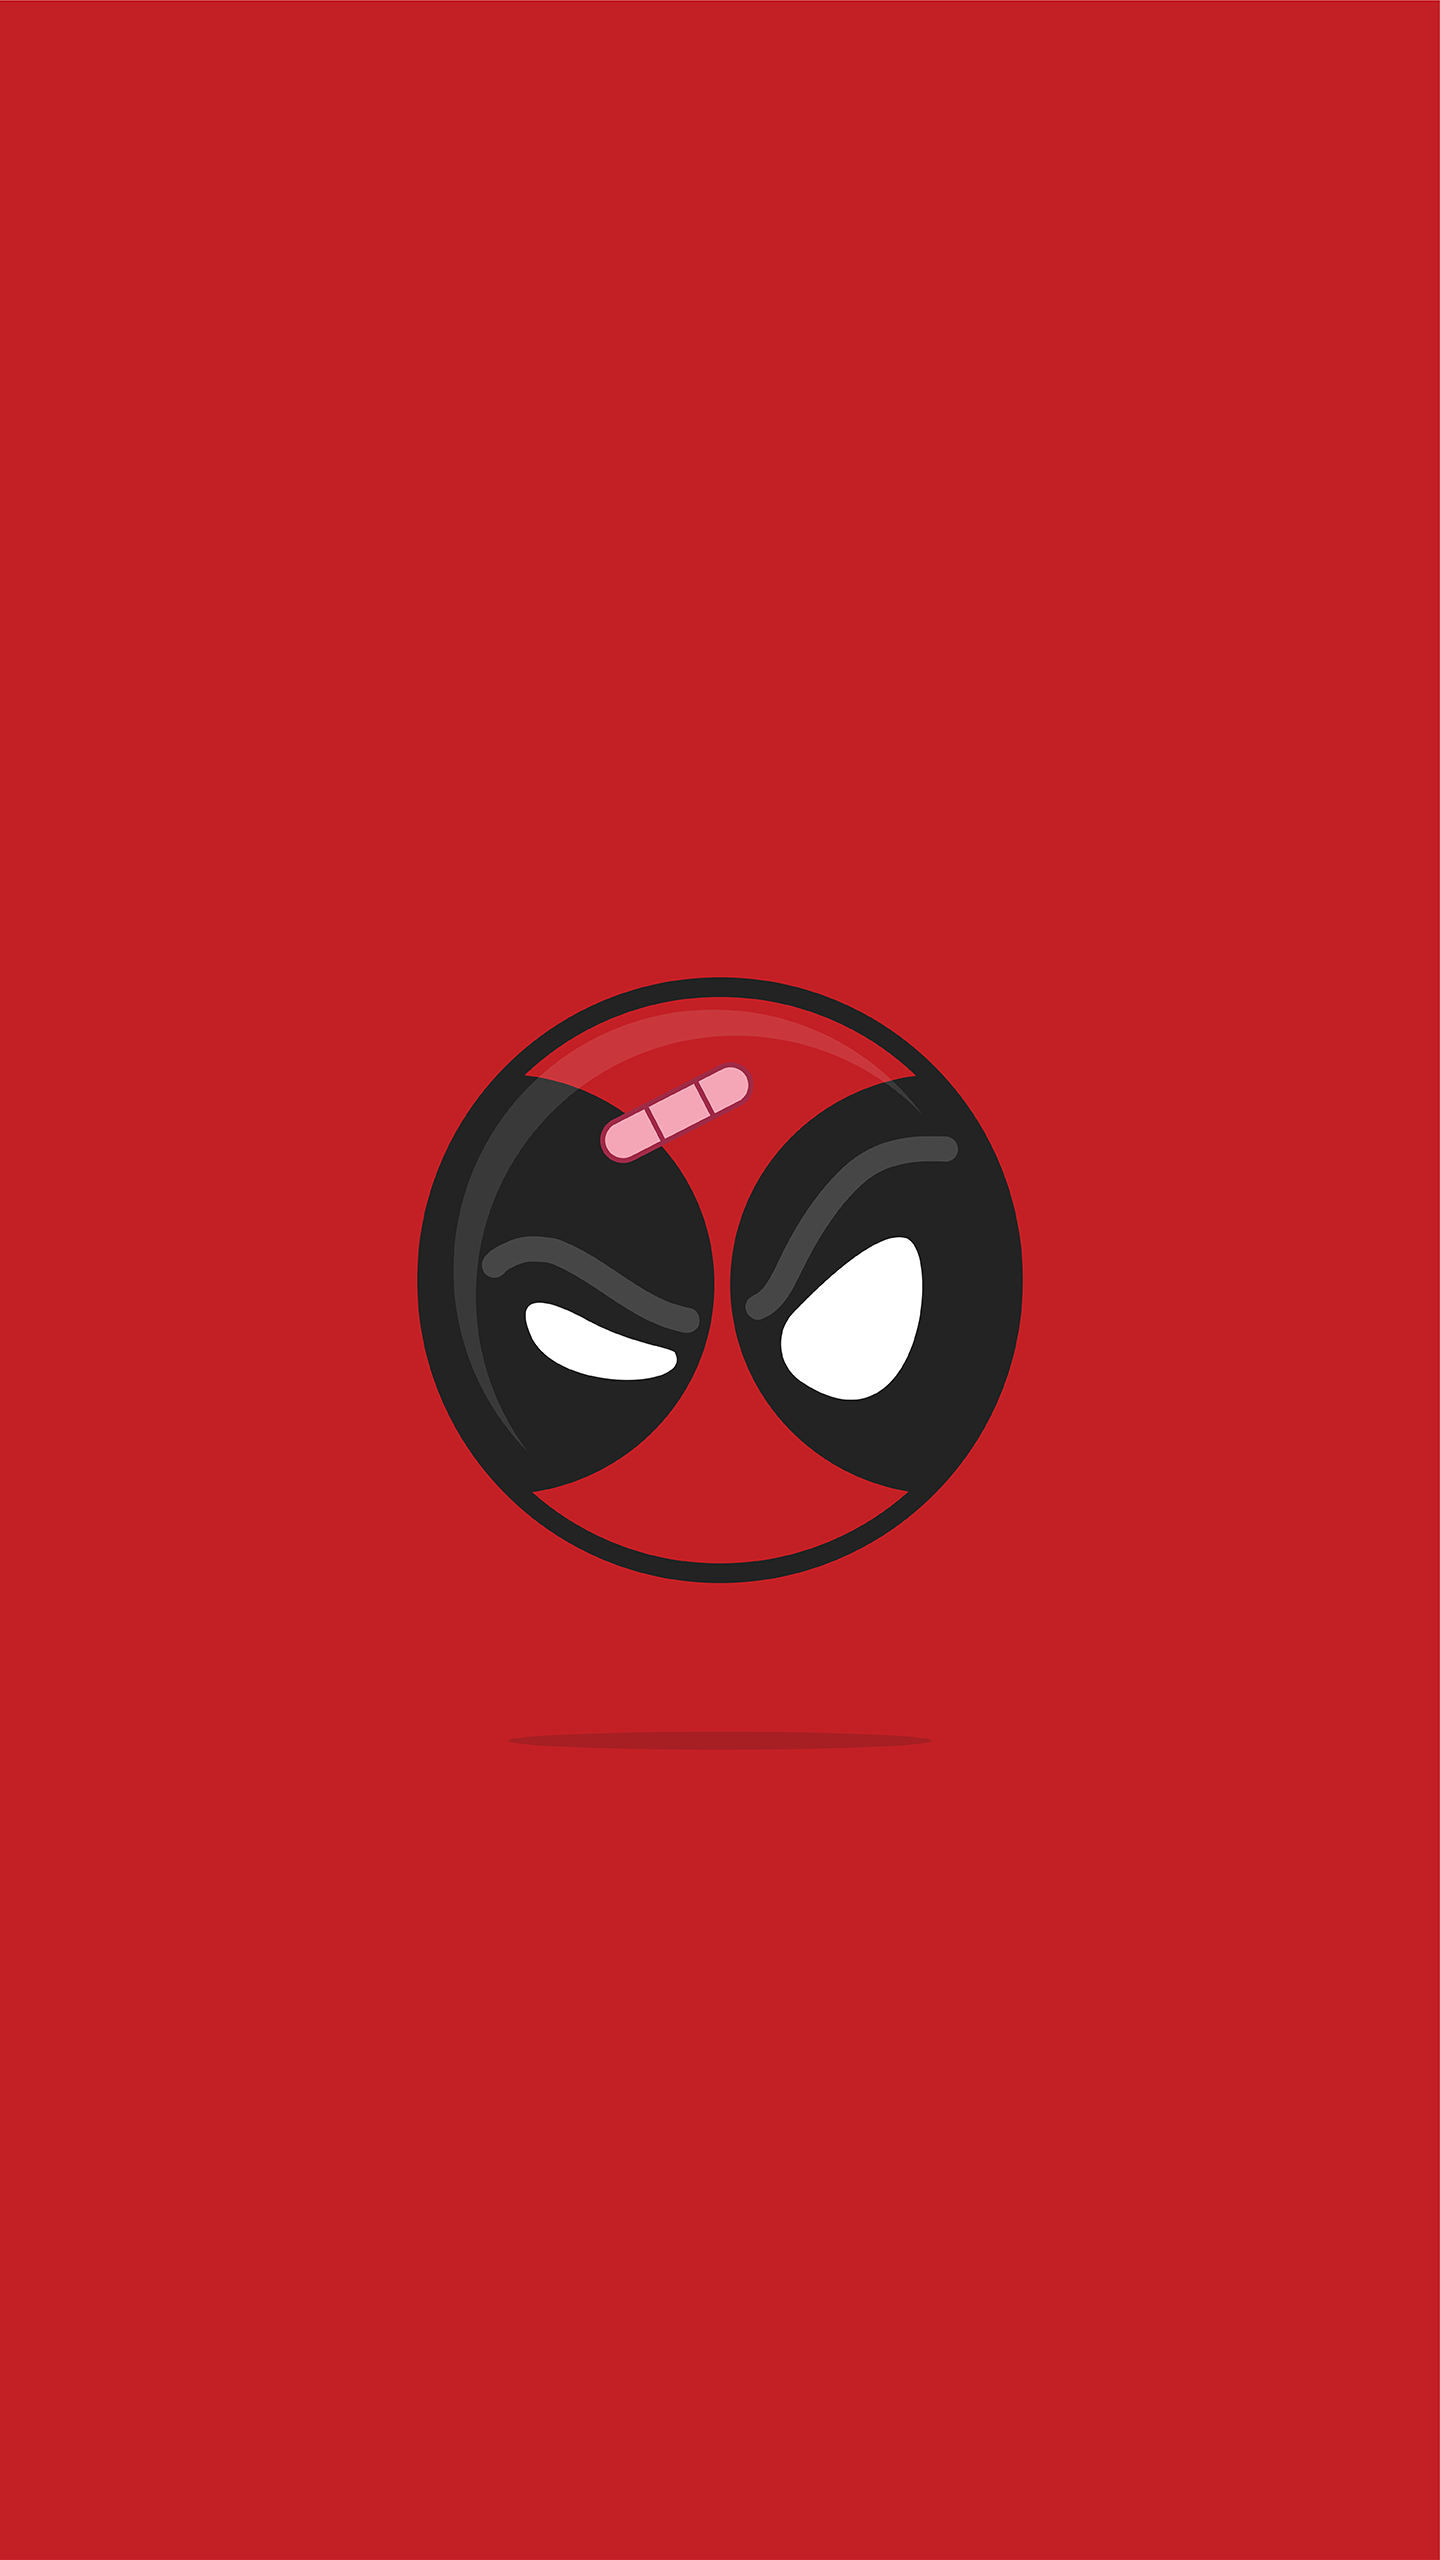 Deadpool Minimal iPhone Wallpaper